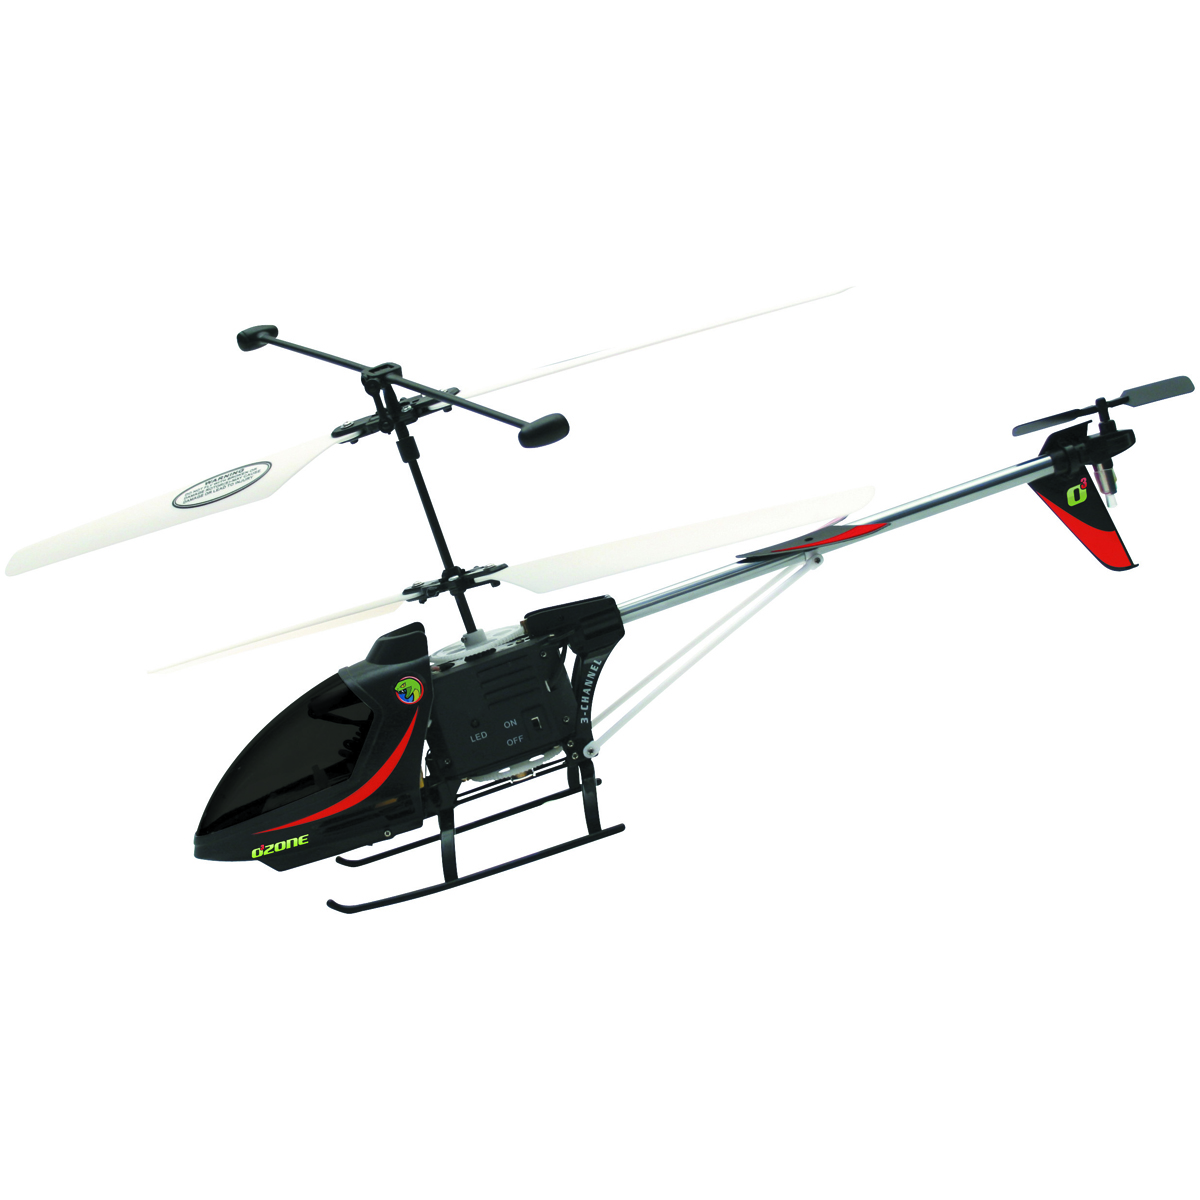 reddit rc helicopter with Venom Ozone 3 5 Channel Remote Controlled Helicopter 67092 on Boeing additionally Uh 60 Black Hawk Dimensions as well Venom Ozone 3 5 Channel Remote Controlled Helicopter 67092 further Lego Technic Sets For 2017 Include Science Ship Monster Truck News further Rctown Mini Drone Rc Drone Quadcopters Headless Mode One Key.